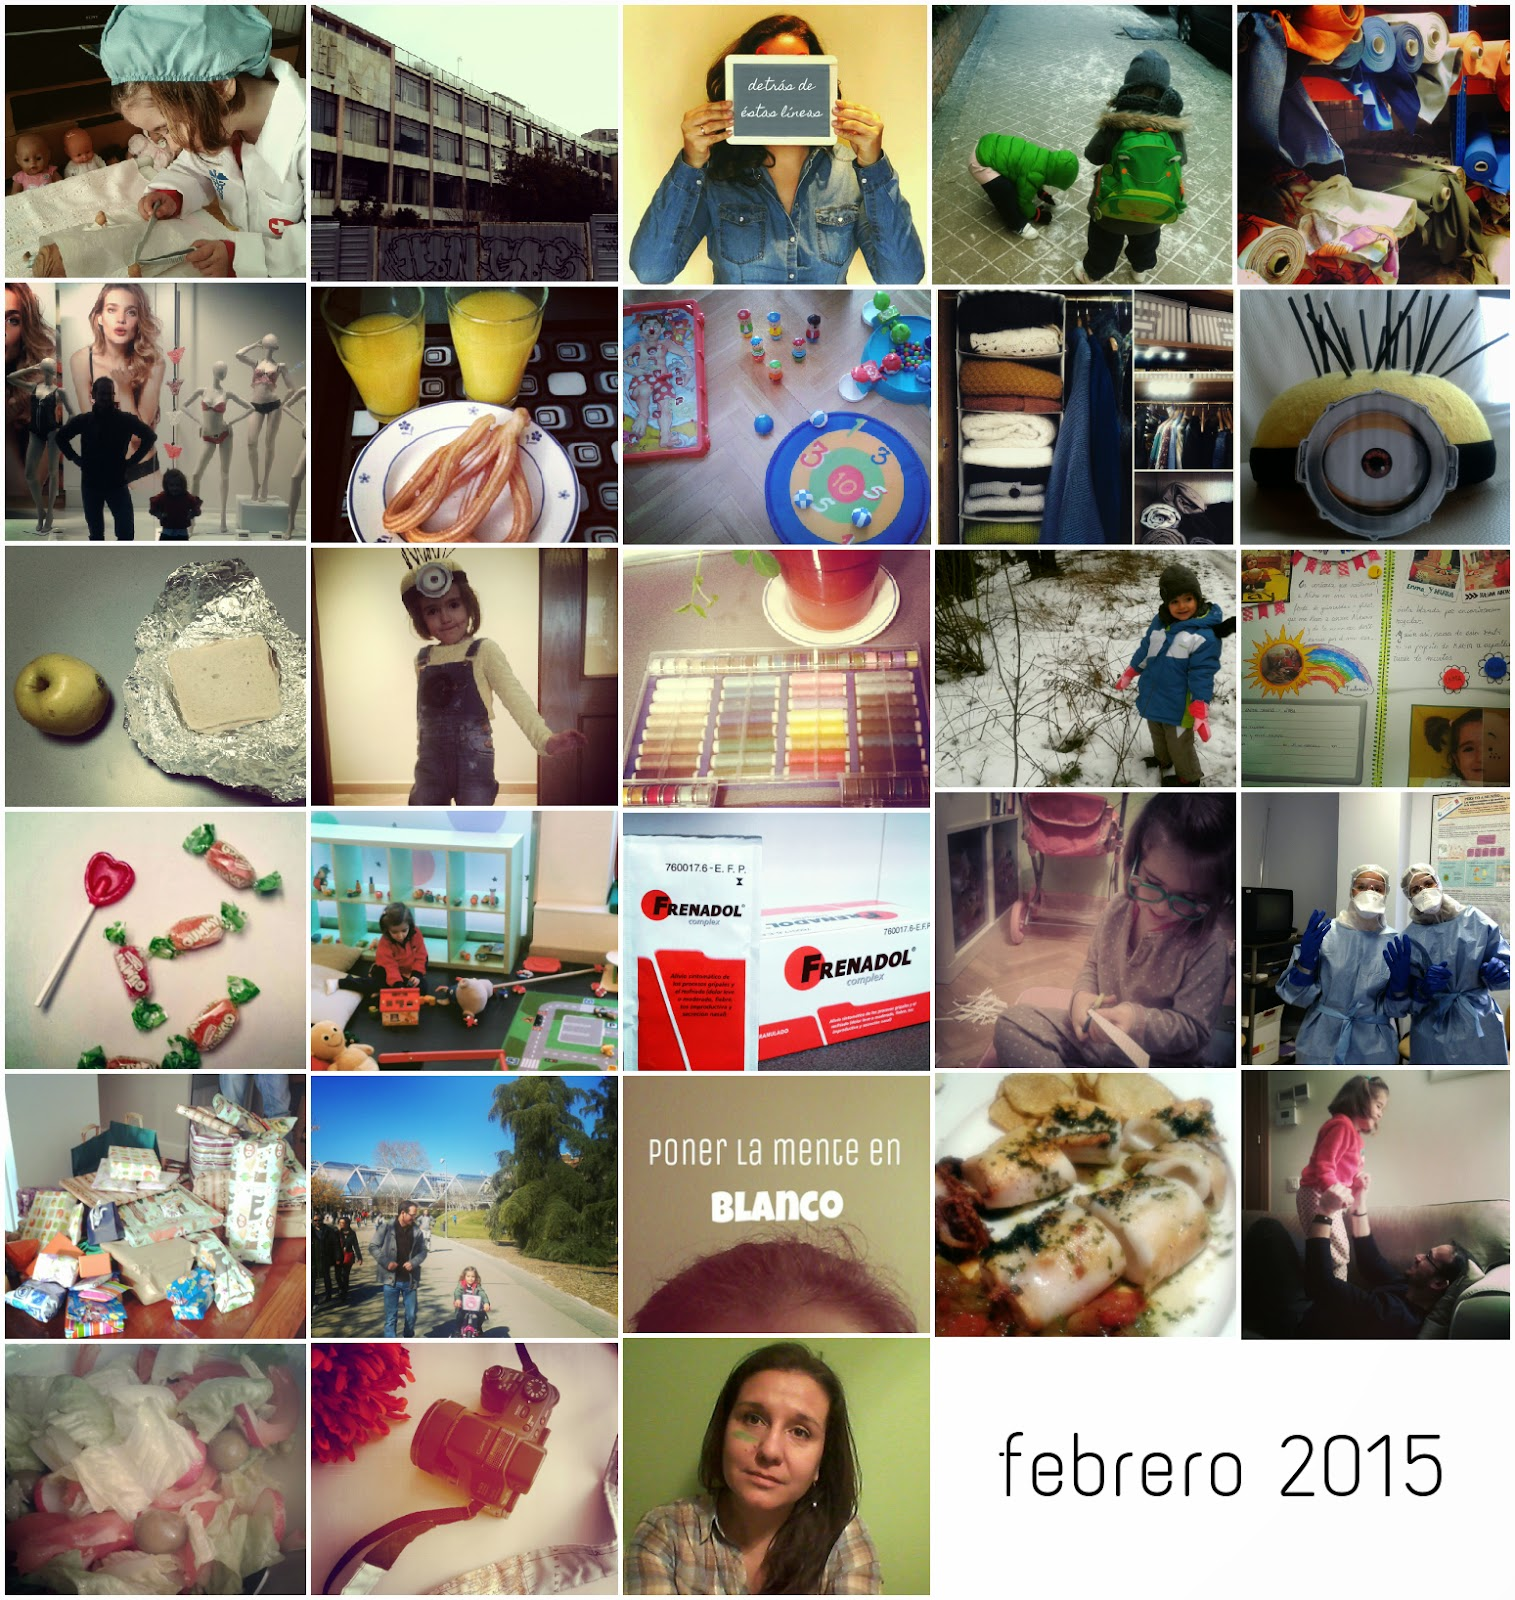 Febrero 2015 en fotos #365sd #365pd3